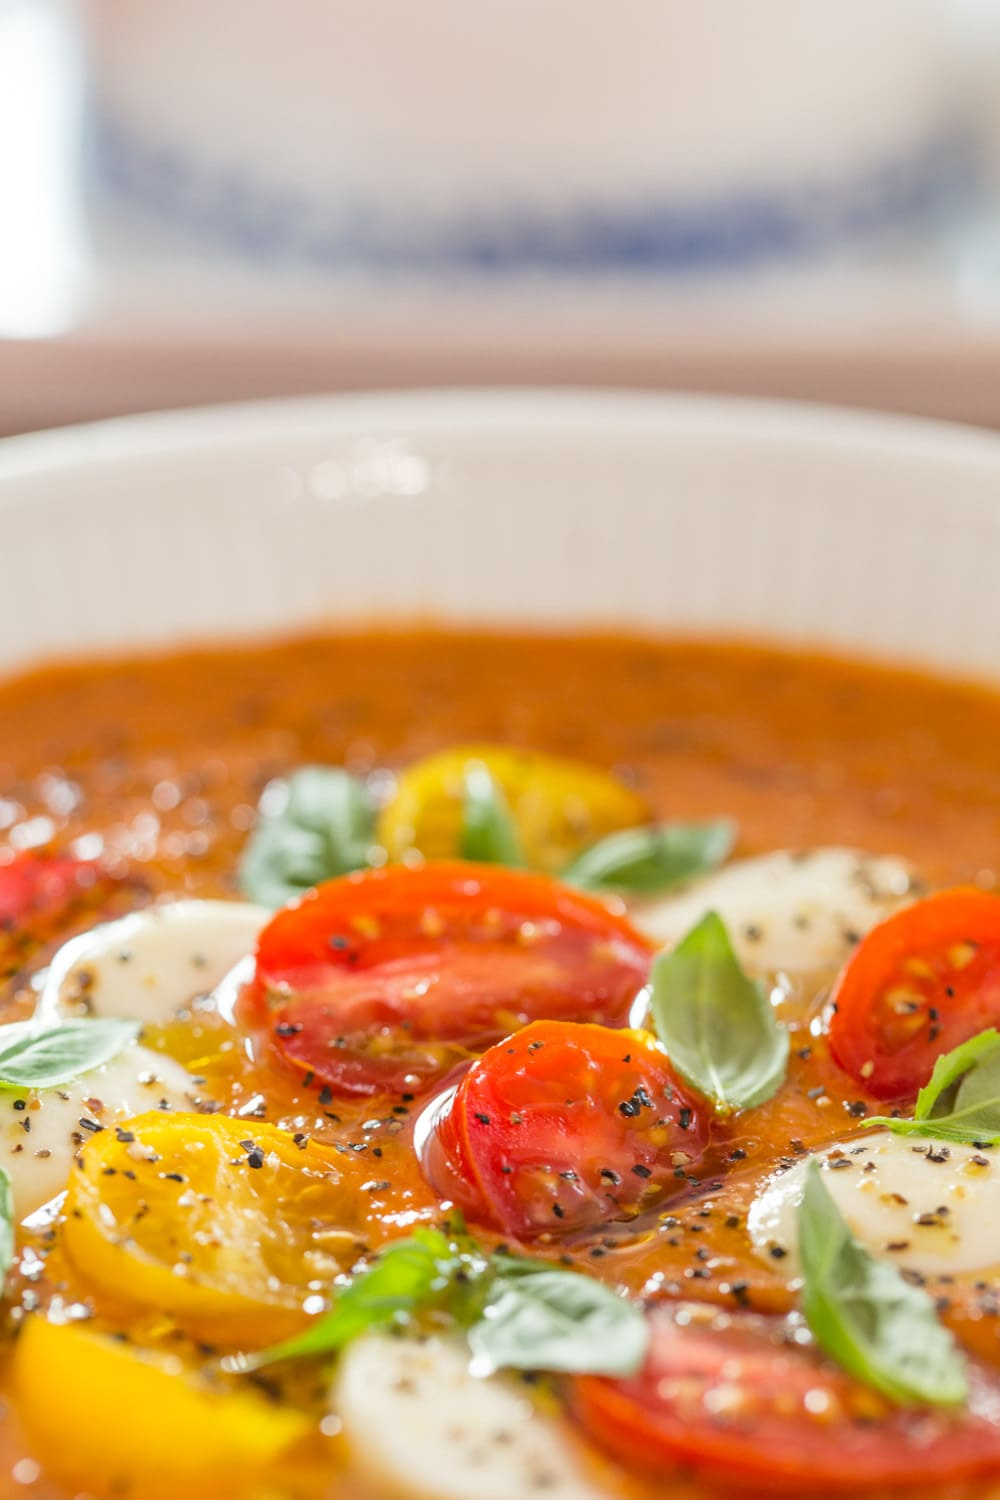 Roasted Tomato Lentil Soup Caprese - with classic tomato-basil flavor and lots of healthy red lentils, this delicious, unique soup has a classic Caprese topping of fresh mozzarella, tomatoes and fresh basil.